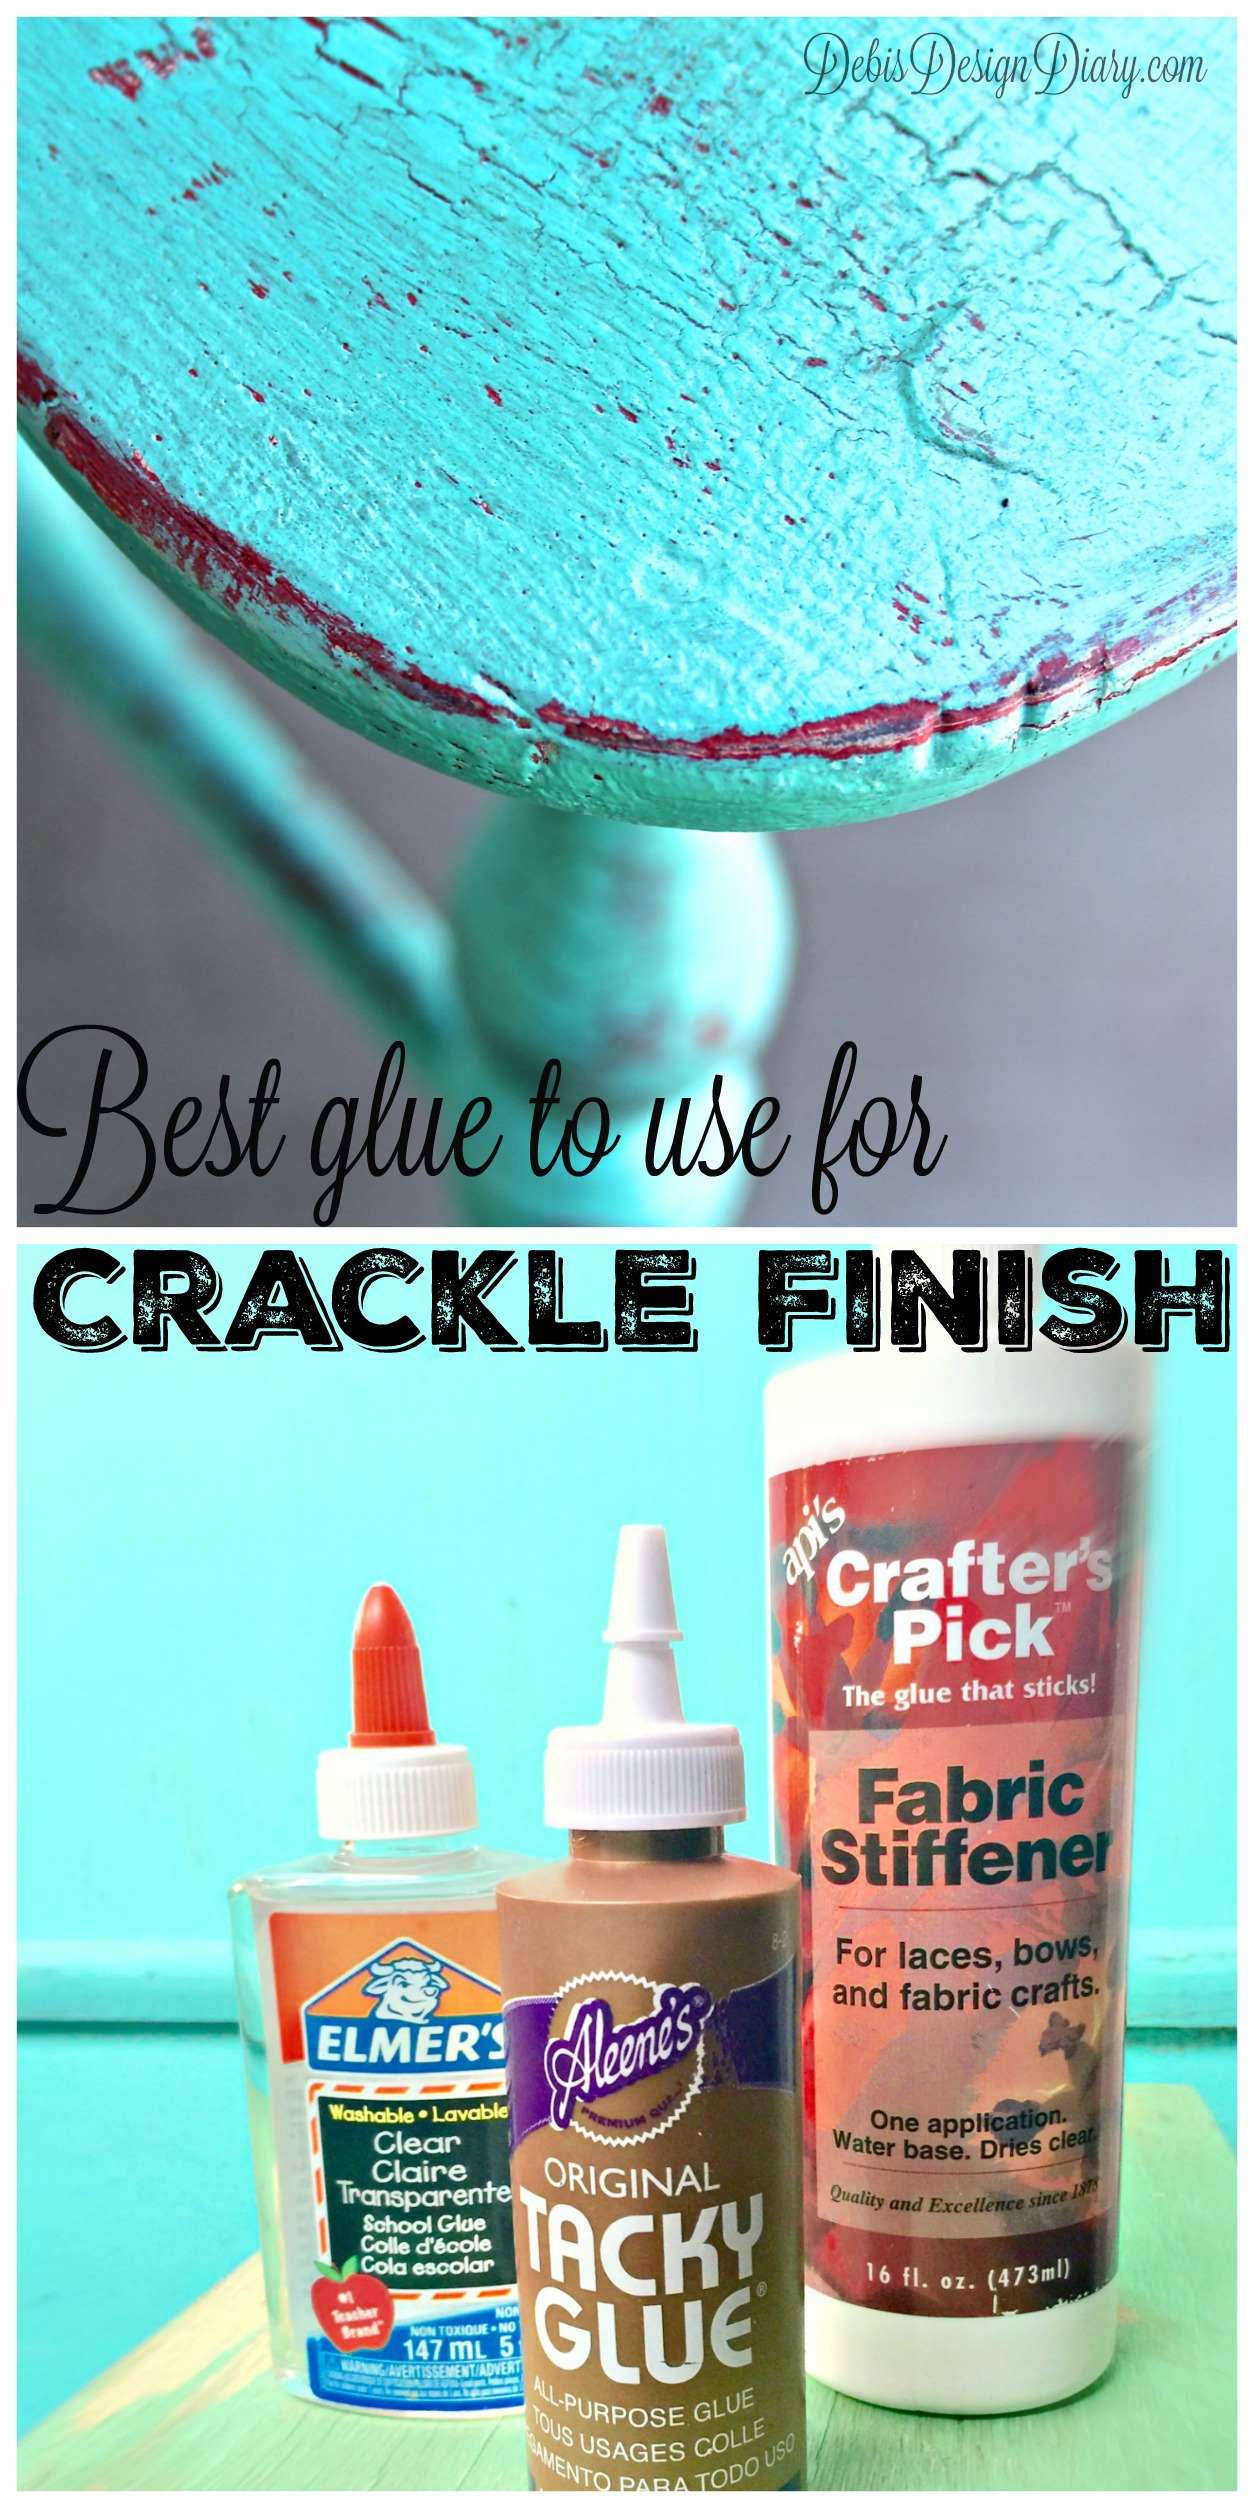 crackle paint finish with elmer s glue debis design diary